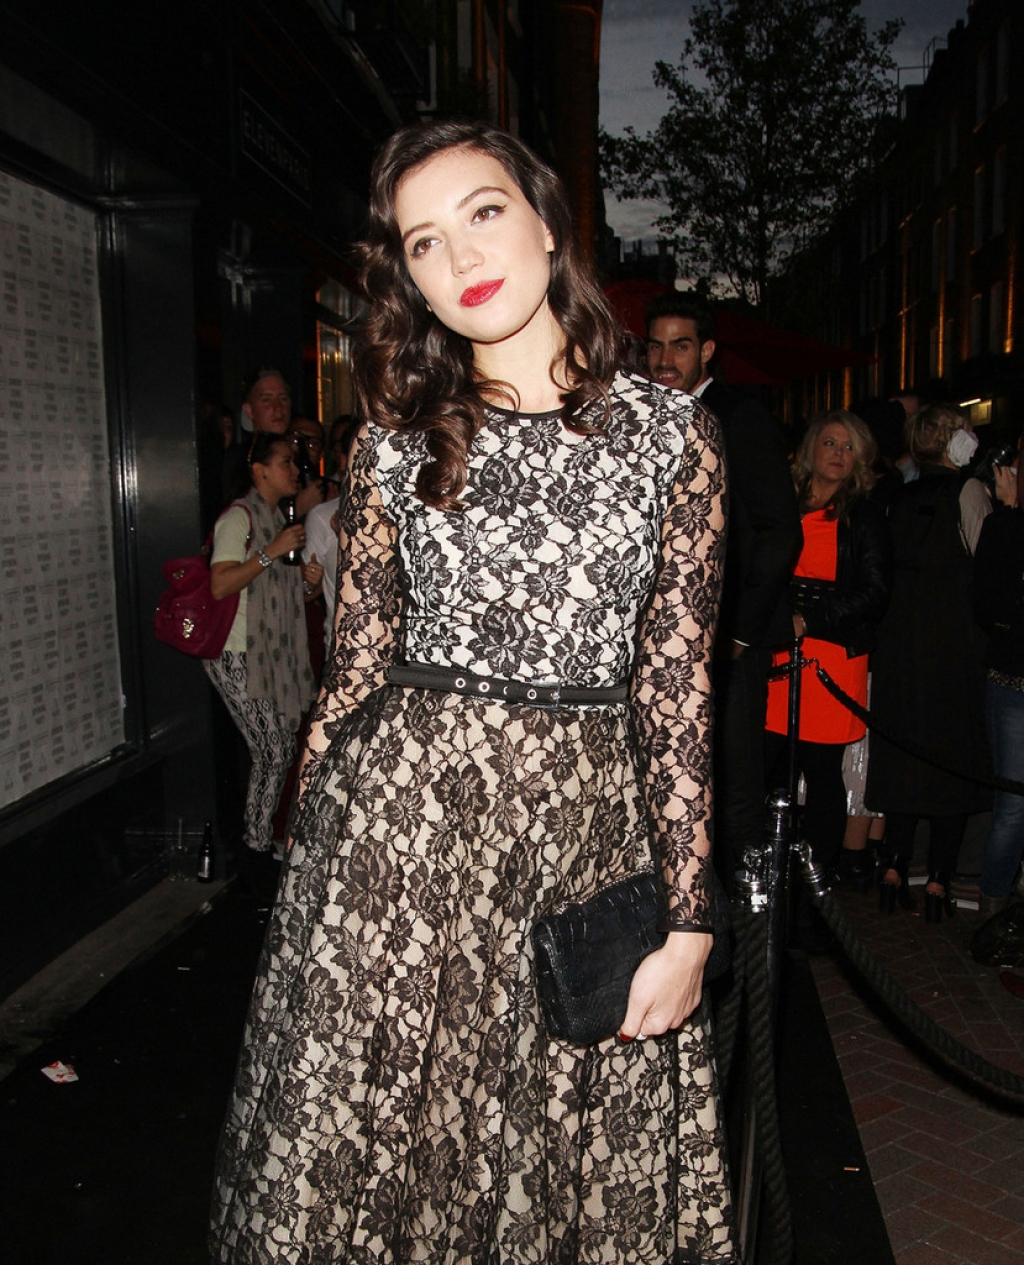 Daisy Lowe at the Eleven Paris Store Launch 43153